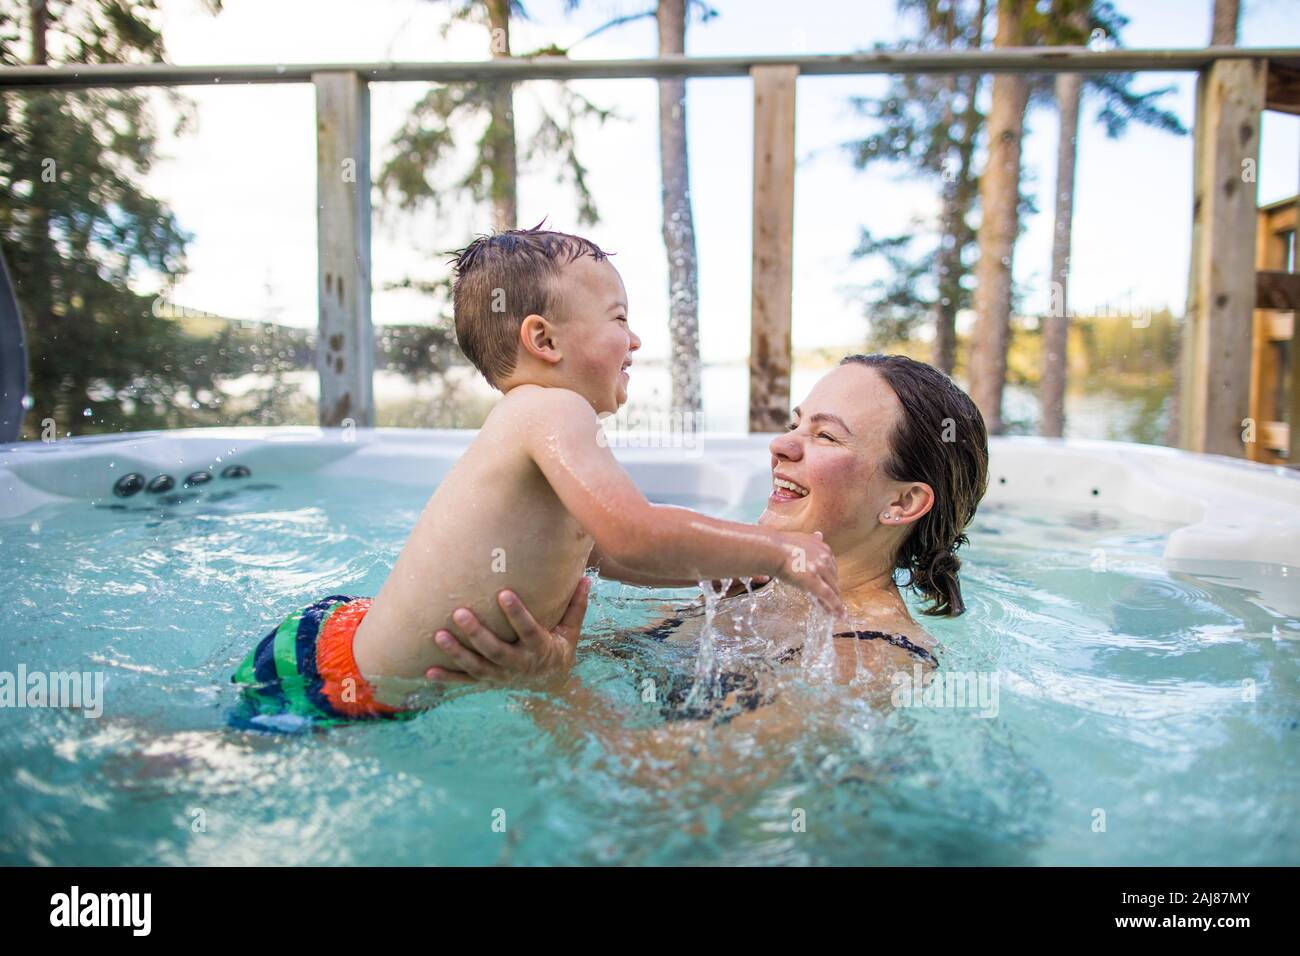 Young boy splashing and playing with mother in swimming pool Stock Photo